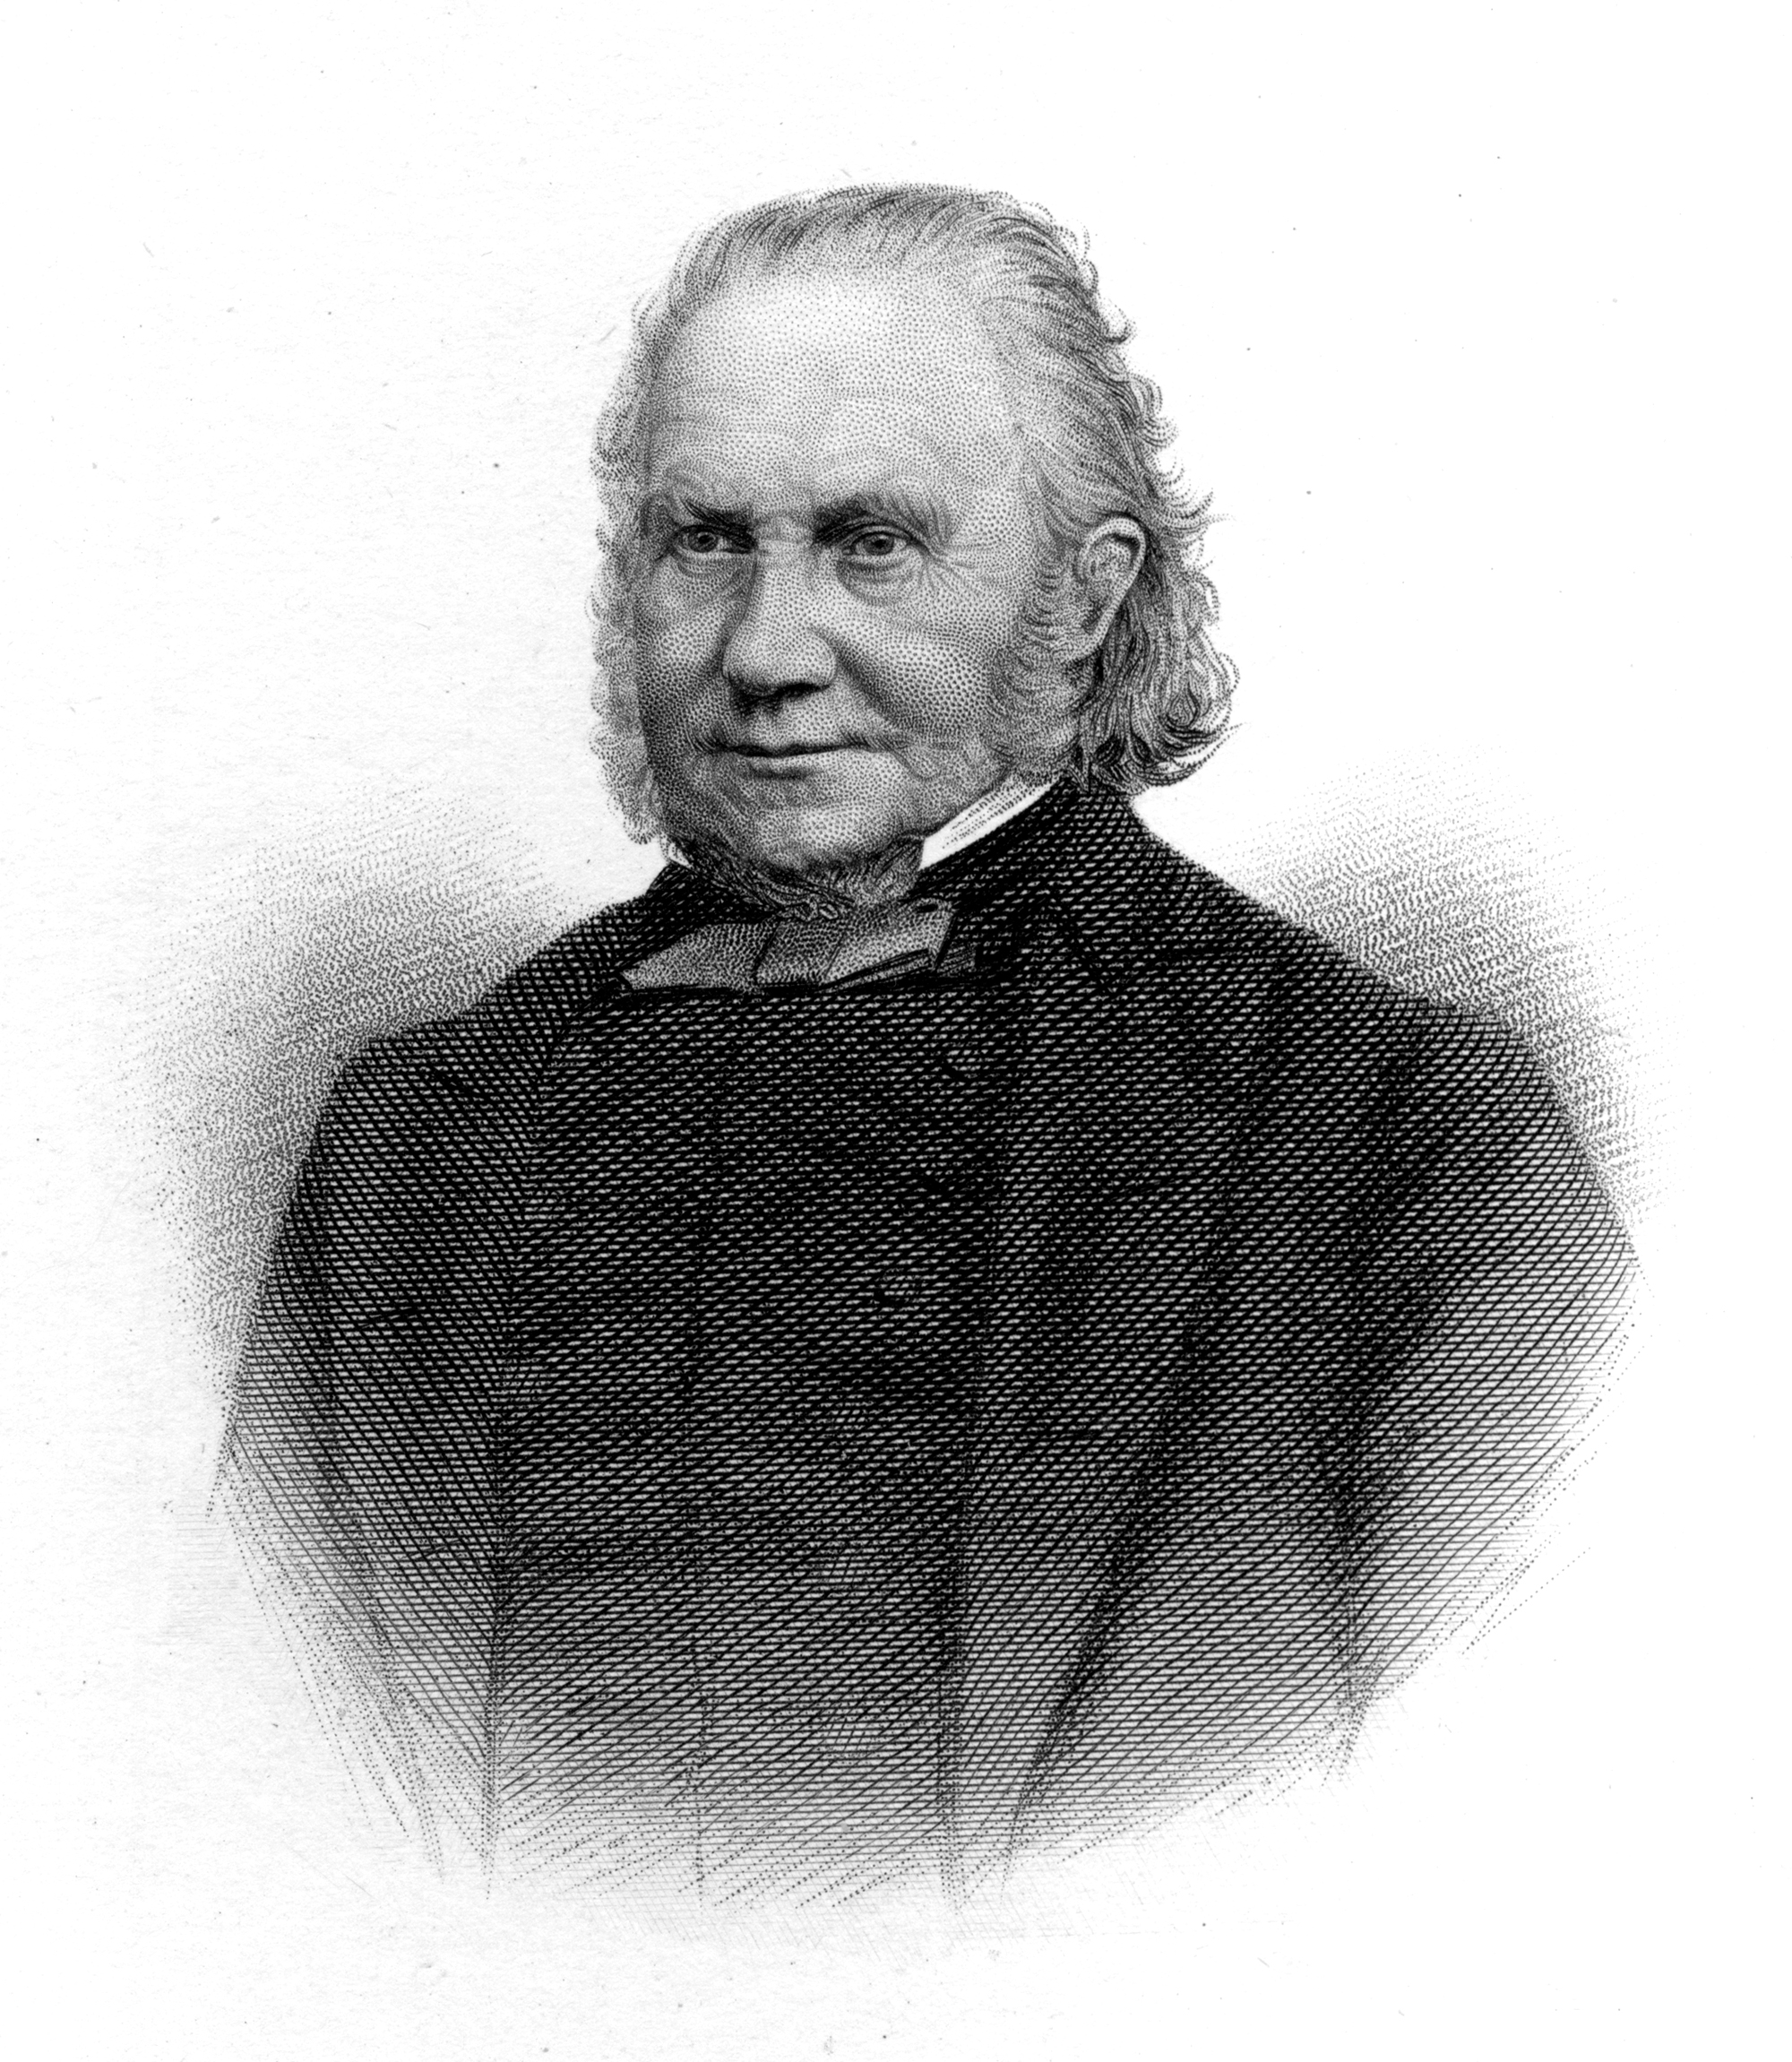 Thomas Cooper. By J. Cochran - Engraving of photograph, frontispiece, Life of Thomas Cooper.